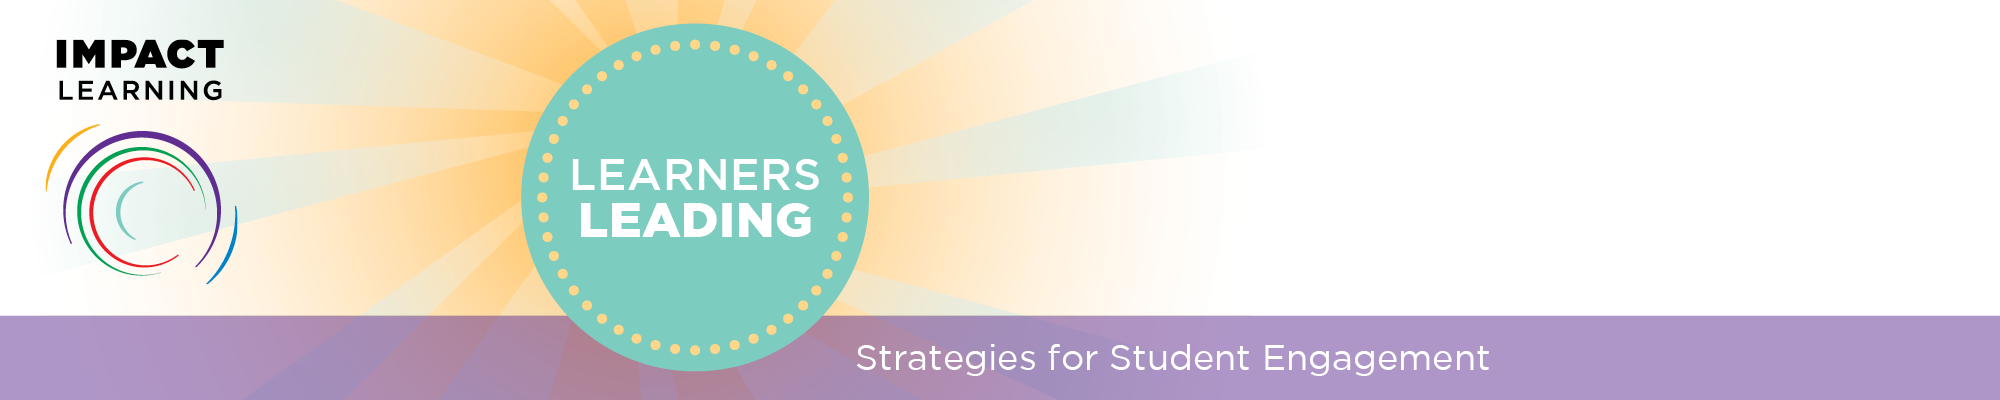 Learners Leading: Strategies for Student Engagement